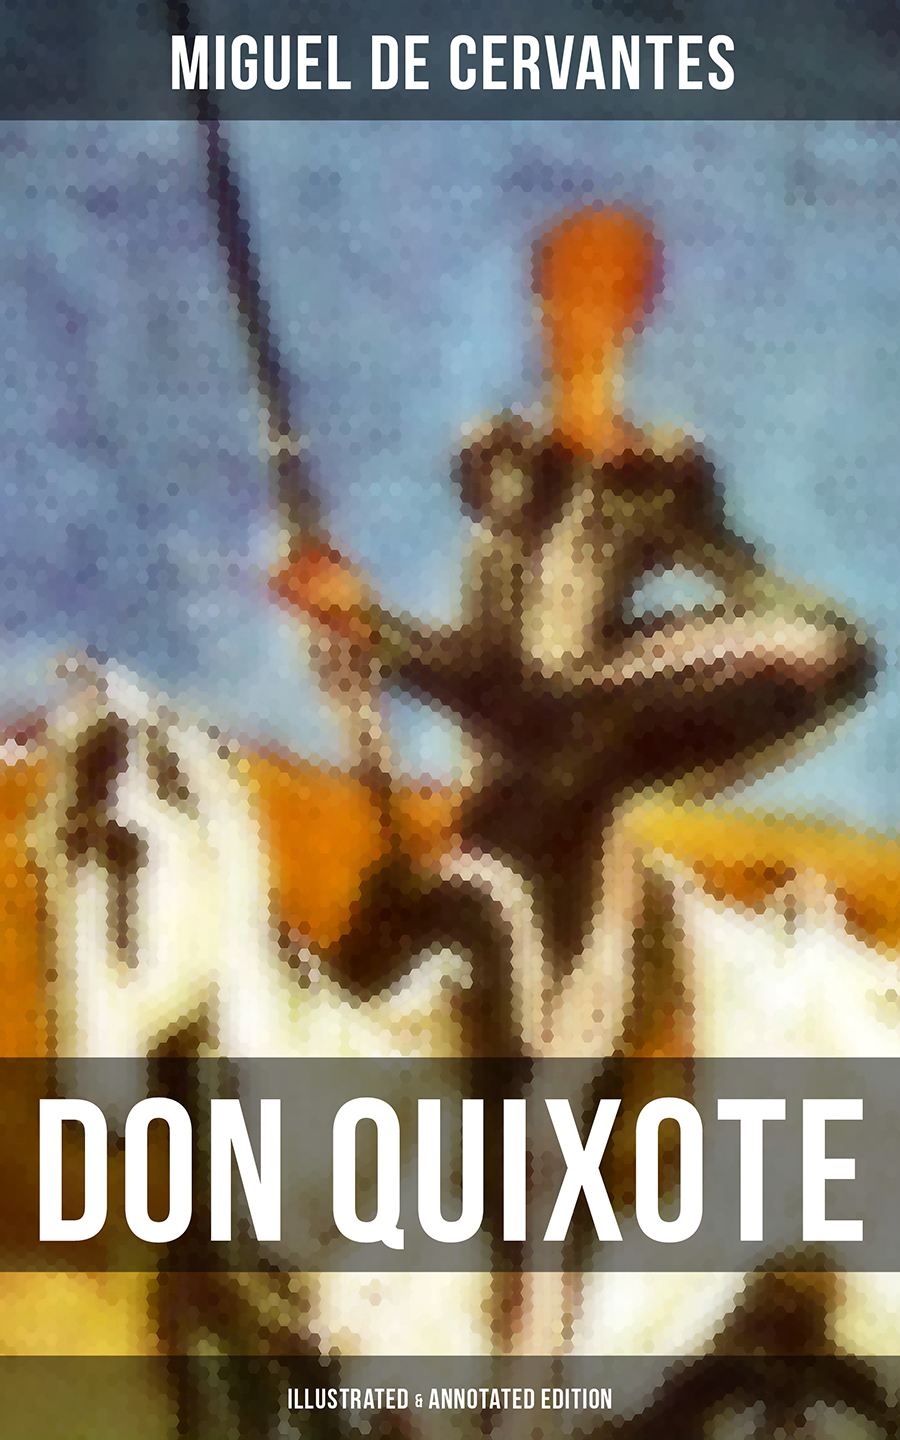 don quixote illustrated annotated edition